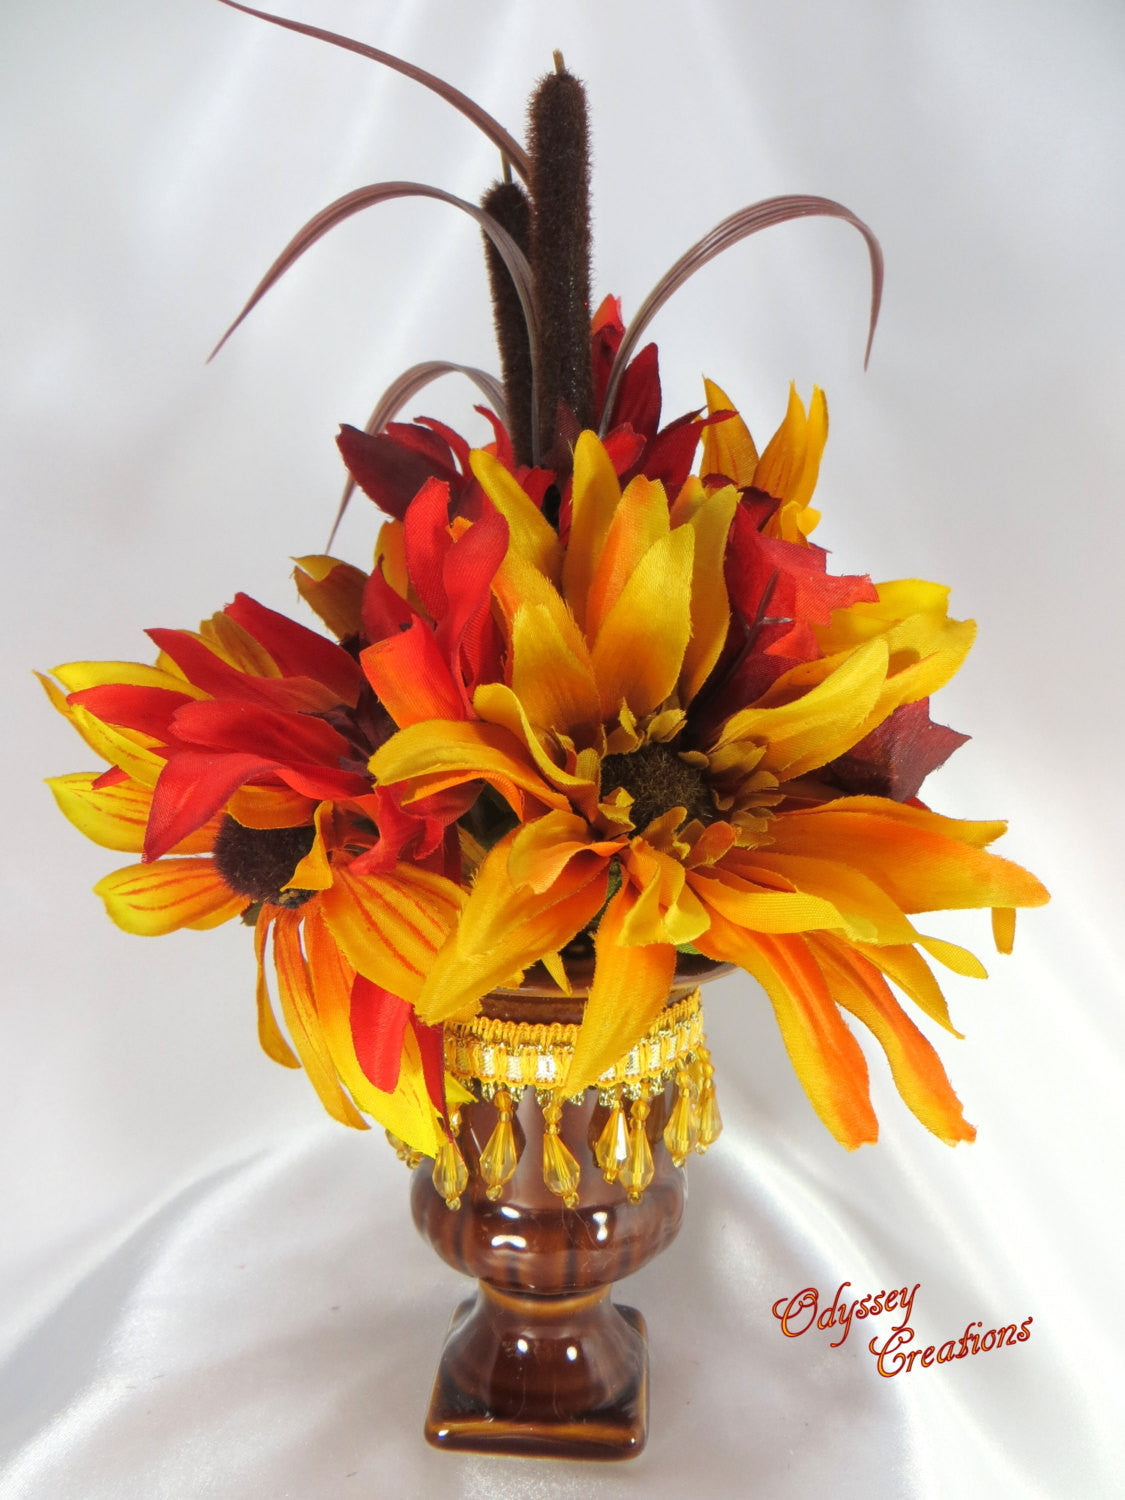 Small Desktop Autumn or Fall Flor Arrangement in Warm Red, Orange and Gold Tones - Odyssey Creations